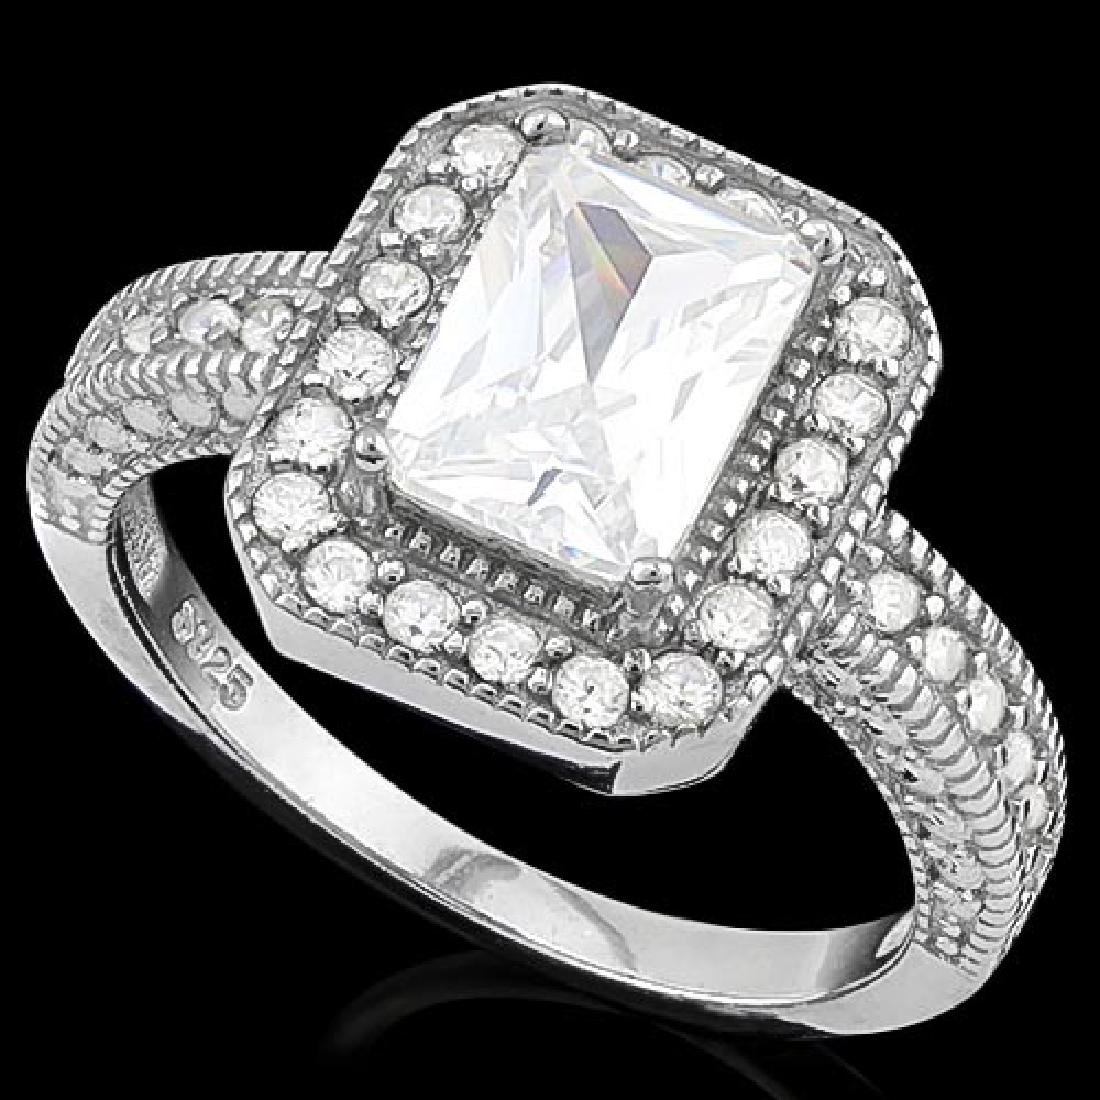 2 CTW (35 PCS) FLAWLESS CREATED DIAMOND 925 STERLING SI